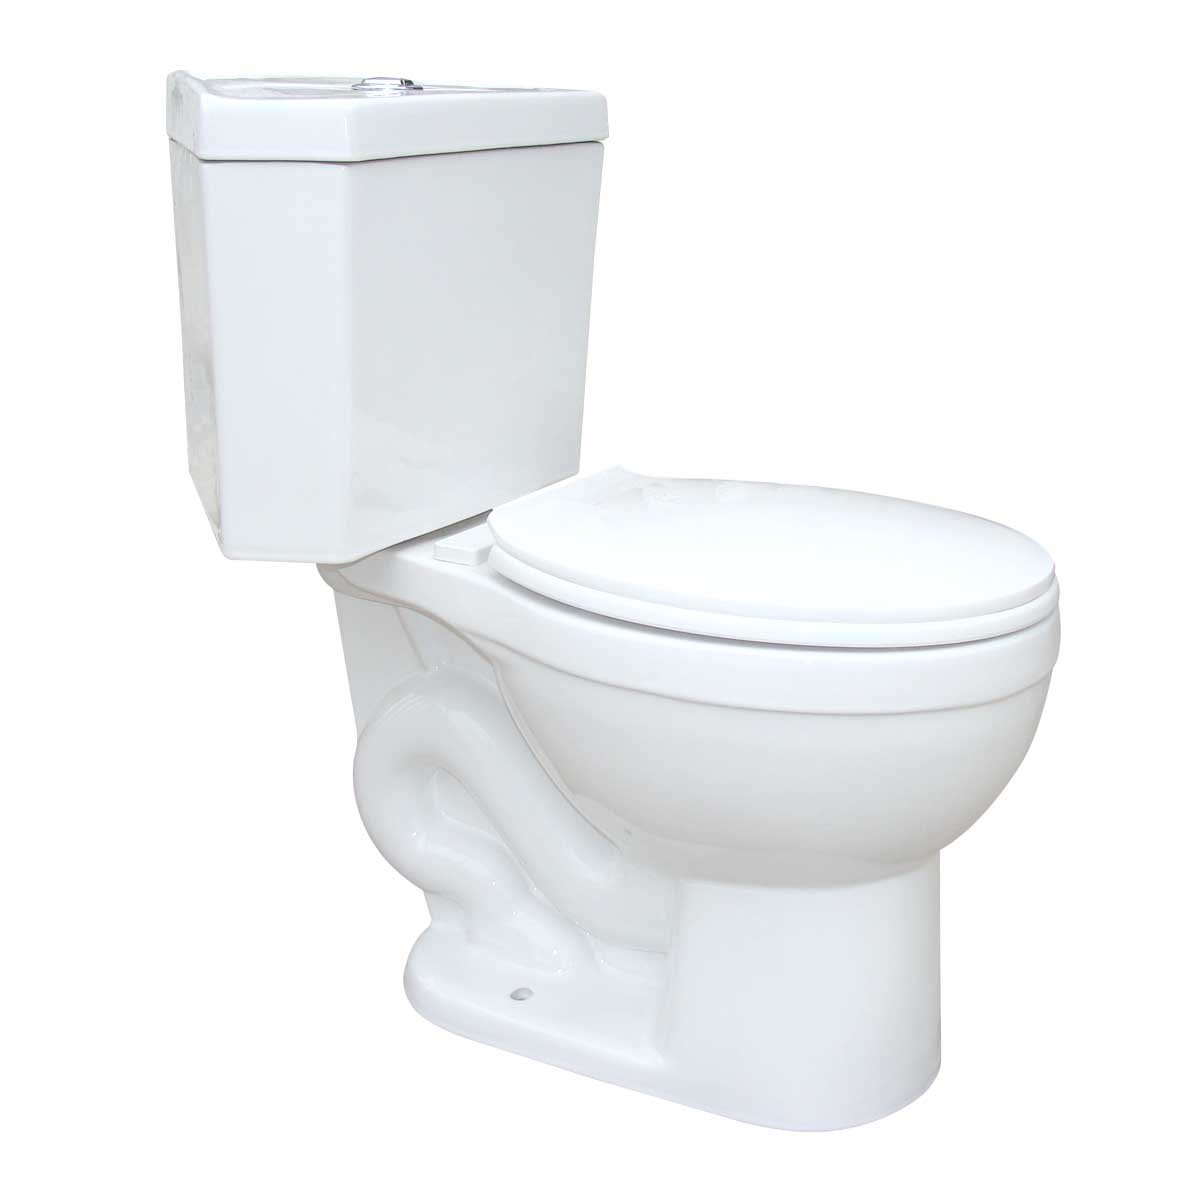 Corner White Round Dual Flush Bathroom Toilet Grade A Porcelain Space Saving Design Includes Slow Close Toilet Seat | Renovator's Supply by Renovators Supply Manufacturing